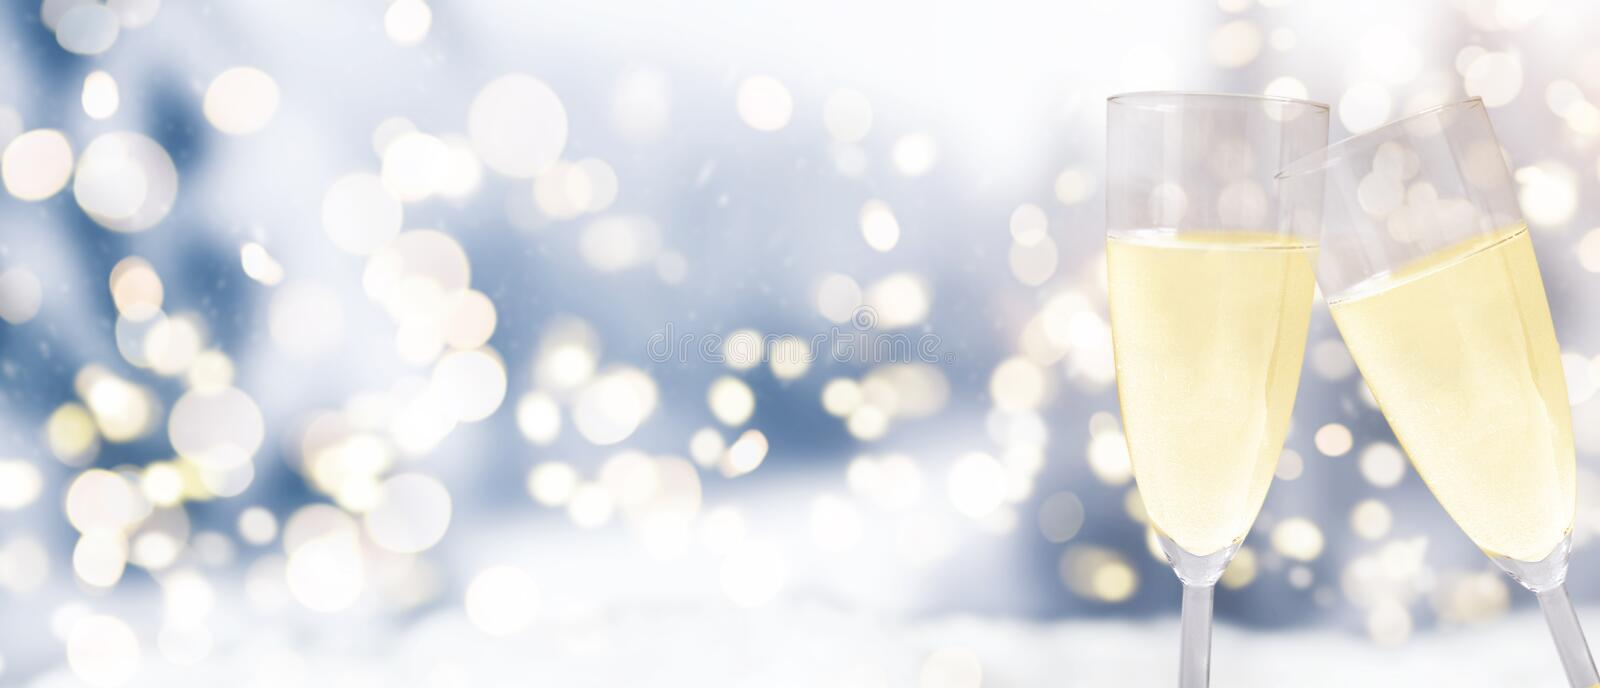 Champagne glasses against winter background royalty free stock photography